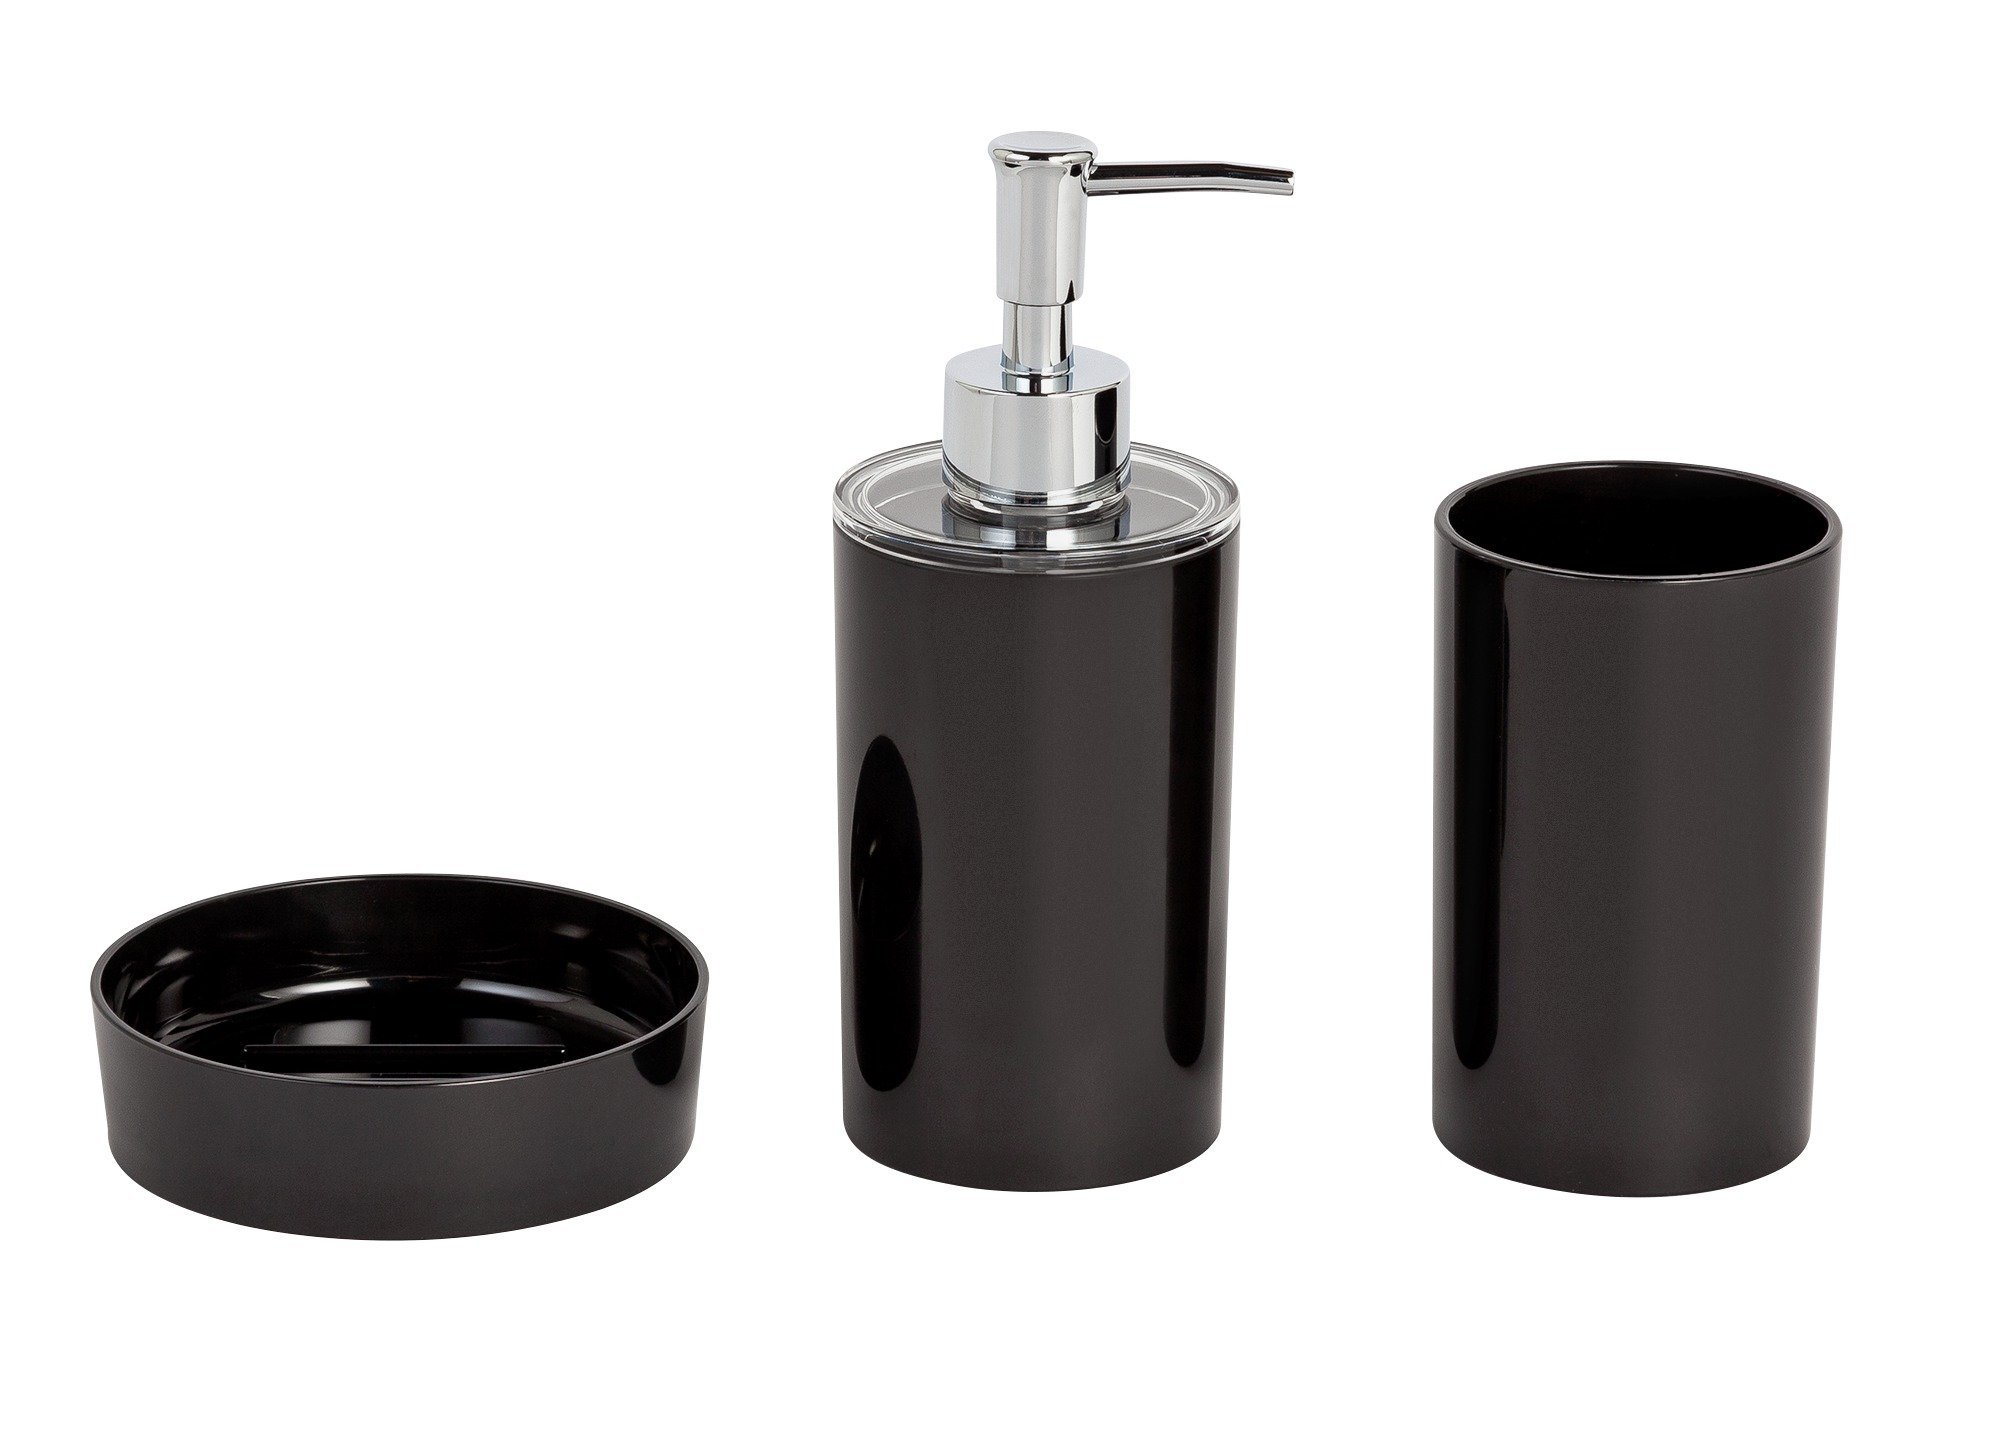 Image of ColourMatch 3 Piece Bathroom Accessory Set - Black